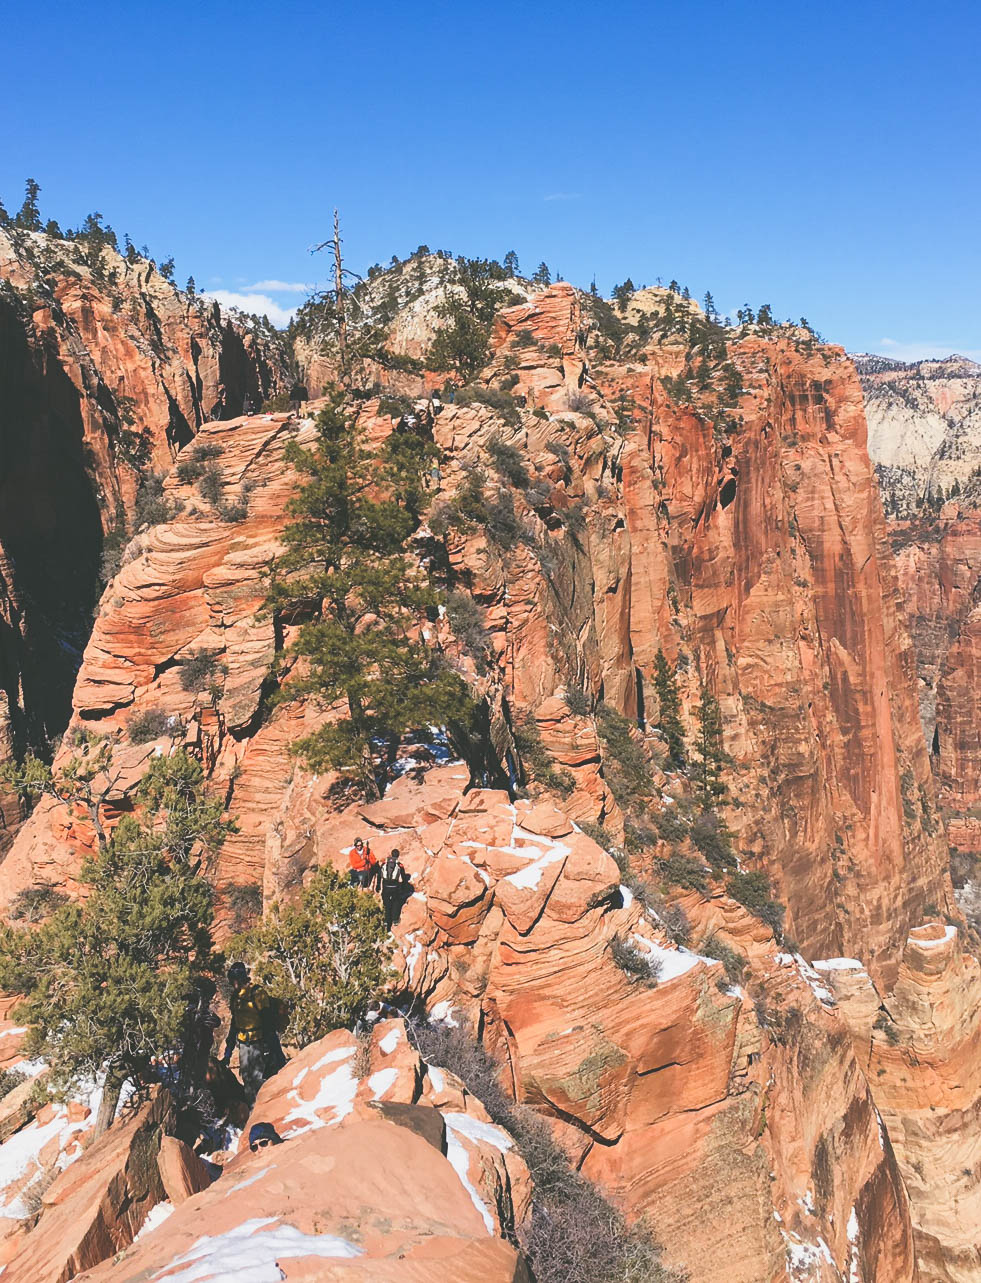 Scout's Overlook from Angel's Landing